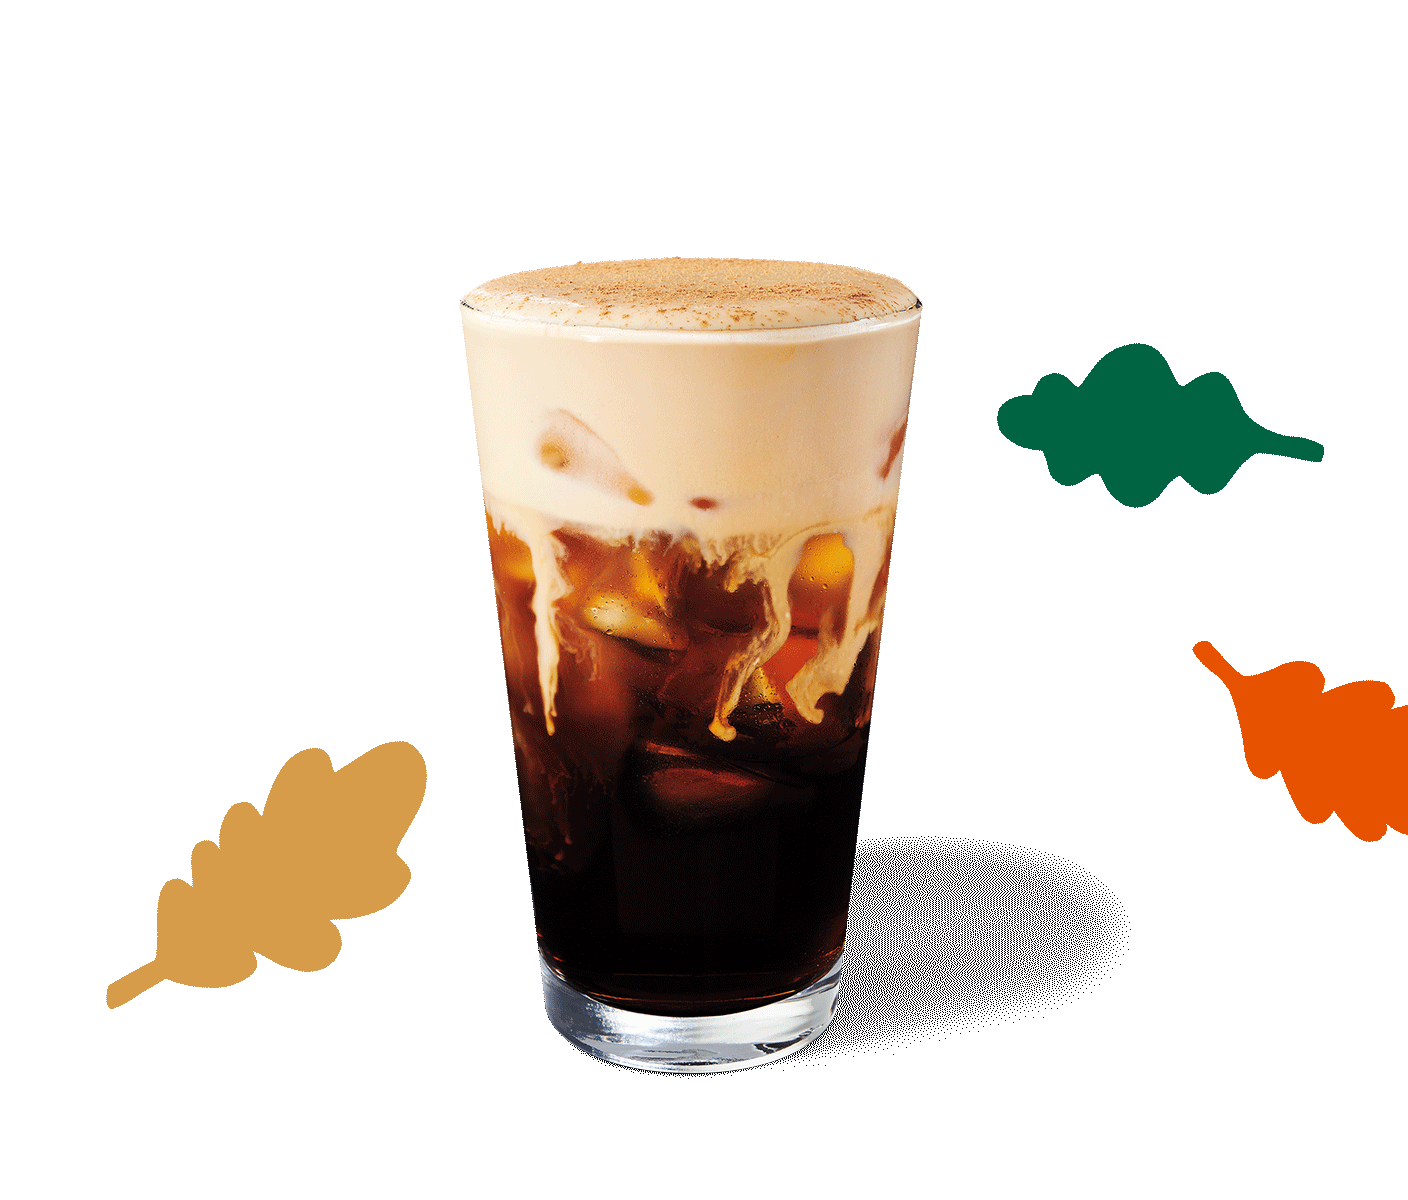 A Pumpkin Cream Cold Brew sits in a layout with graphic, fall leaves.